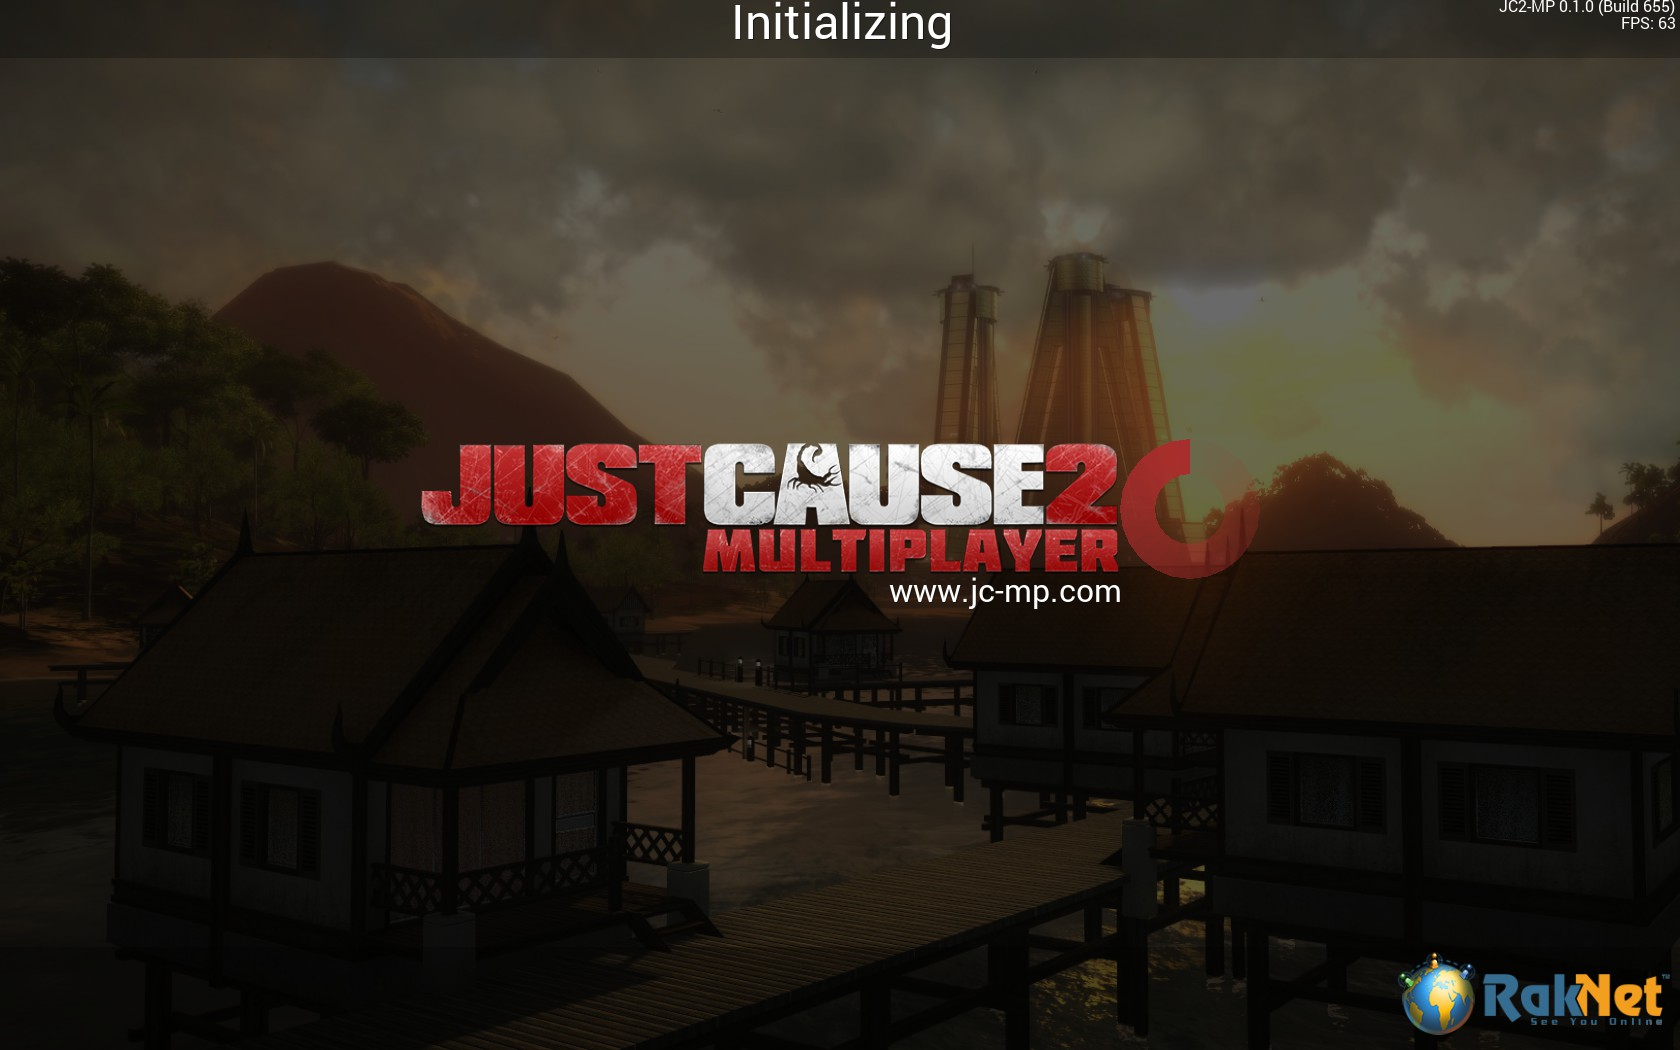 Just Cause 2 Multiplayer Loading